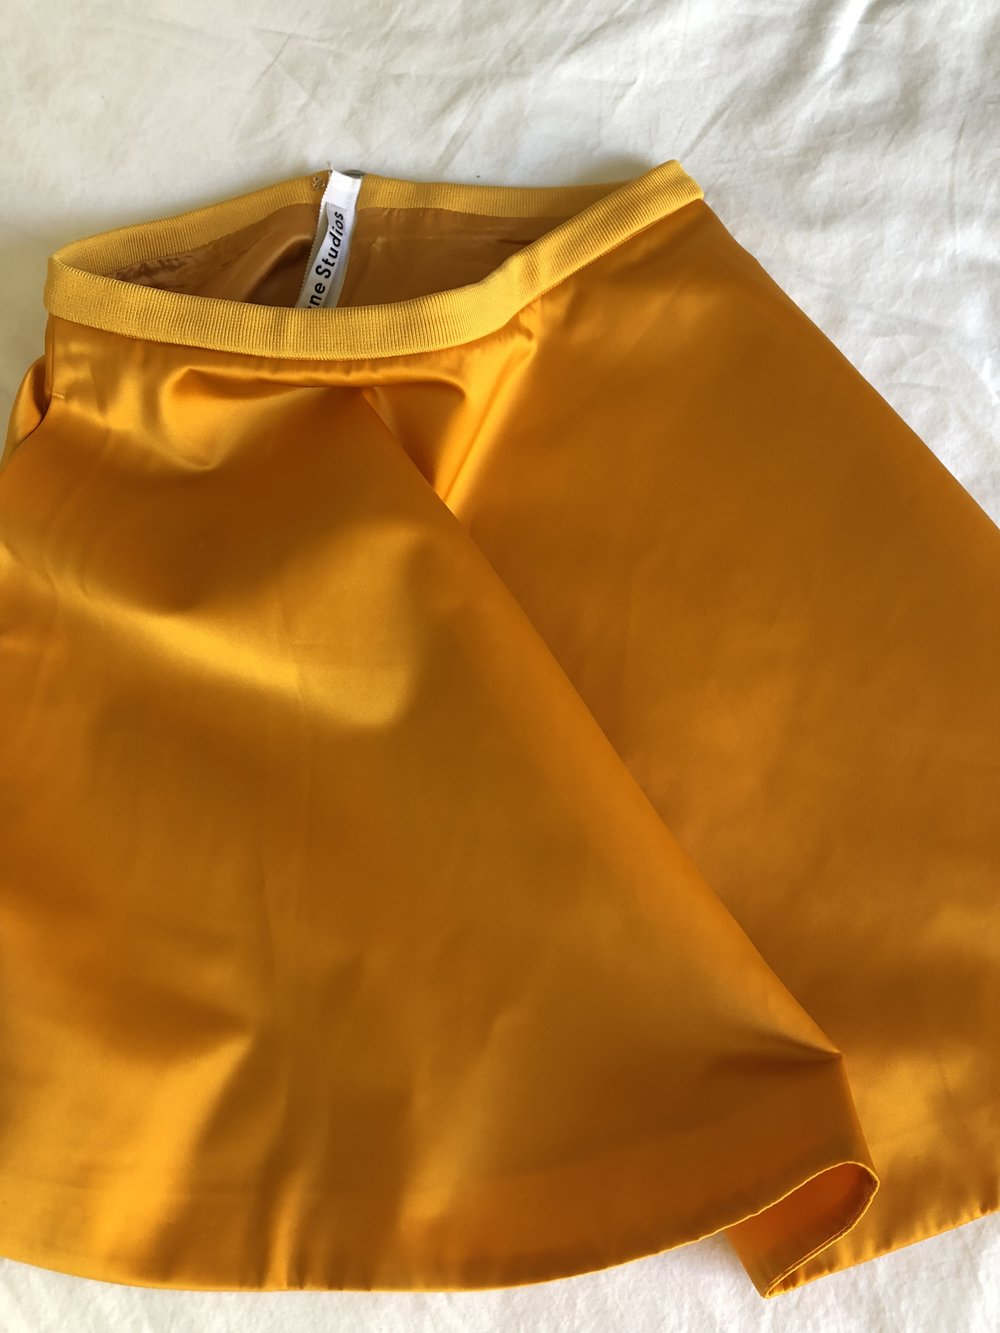 FRESHLY SQUEEZED IN OUR STOCKROOM: THIS PRE-OWNED ACNE STUDIOS SKIRT IS JUST WAITING TO BE YOURS FOR A MONTH!